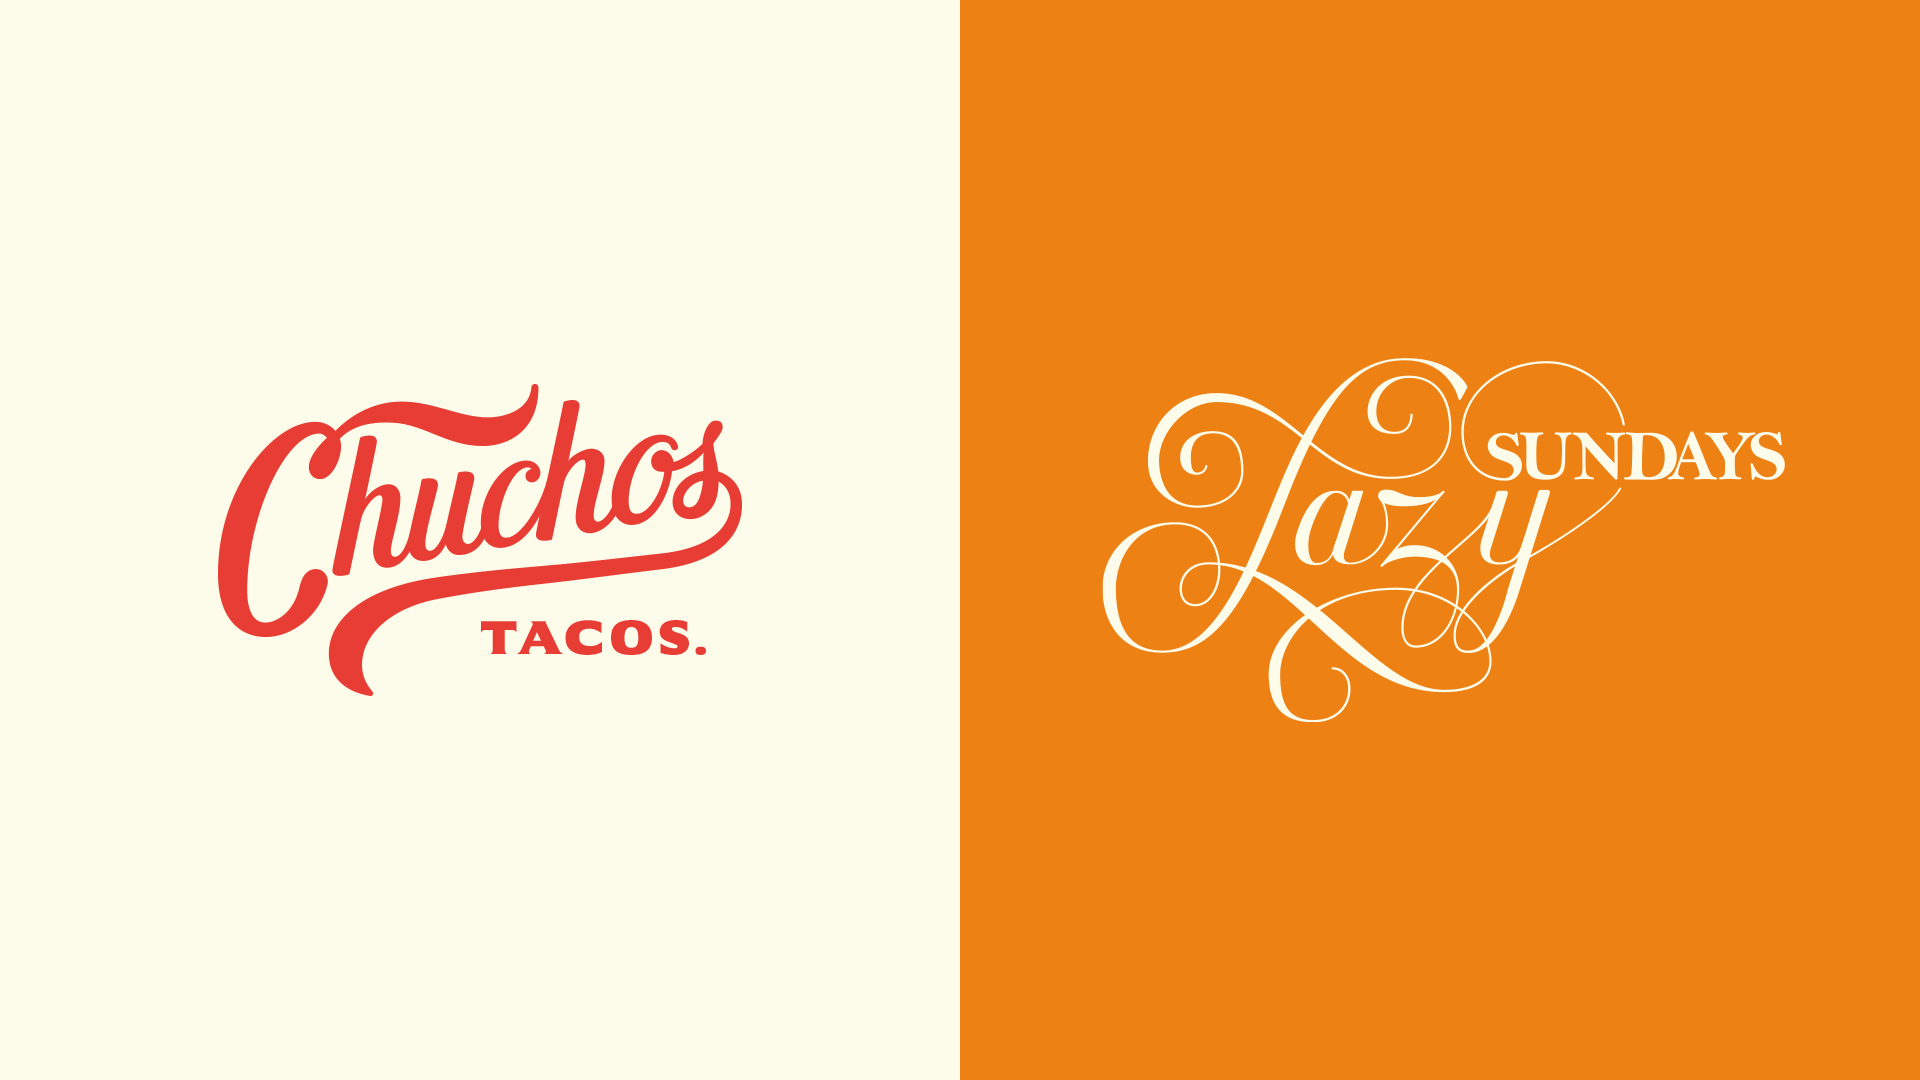 Hand Lettering by Jack Gudgin - Chuchos Tacos logo and Lazy Sundays lettering